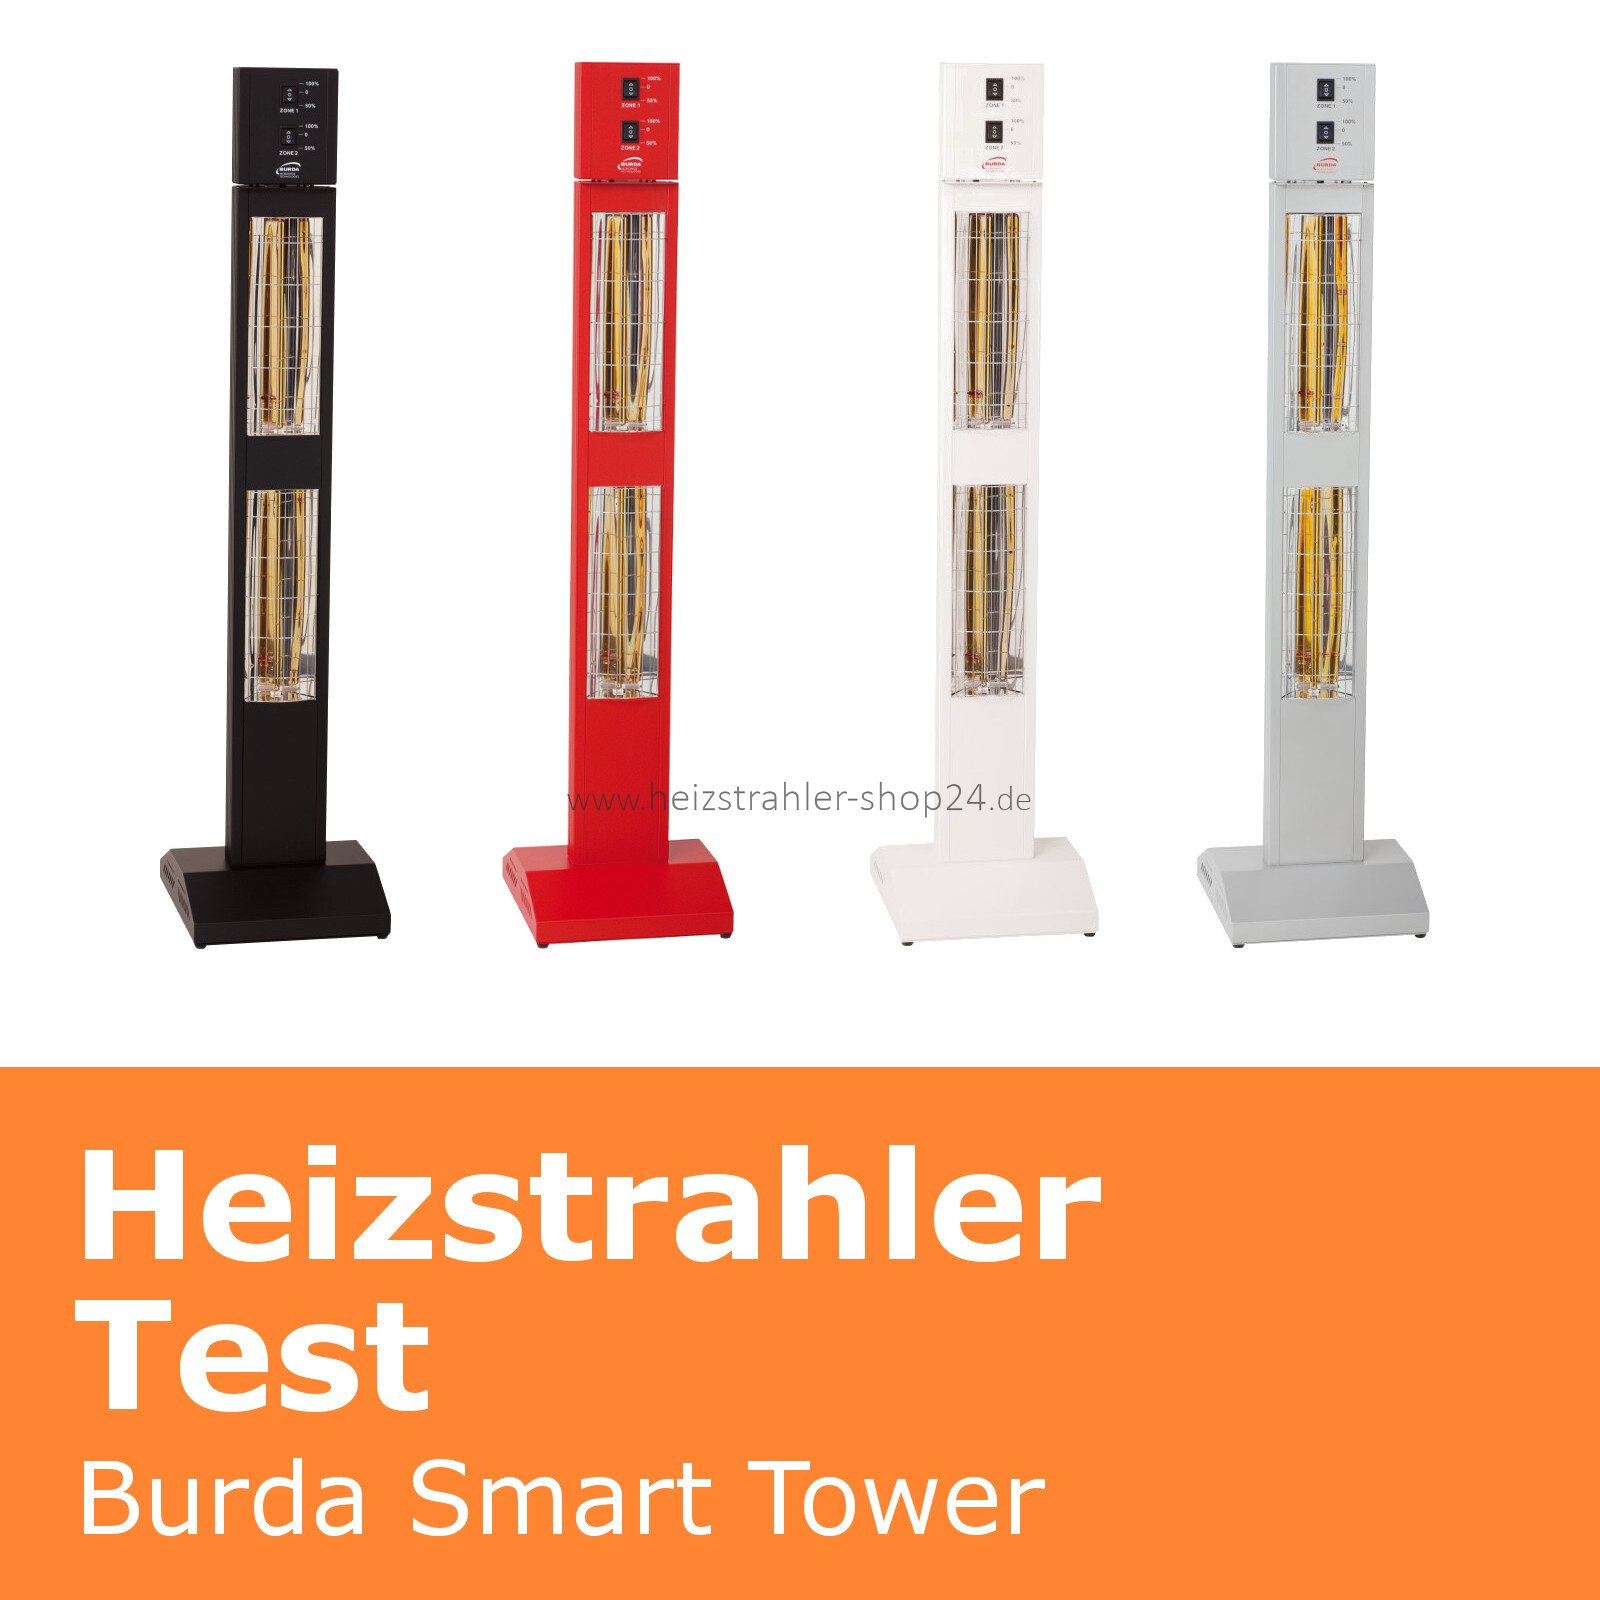 heizstrahlertest burda smart tower infrarotheizstrahler. Black Bedroom Furniture Sets. Home Design Ideas